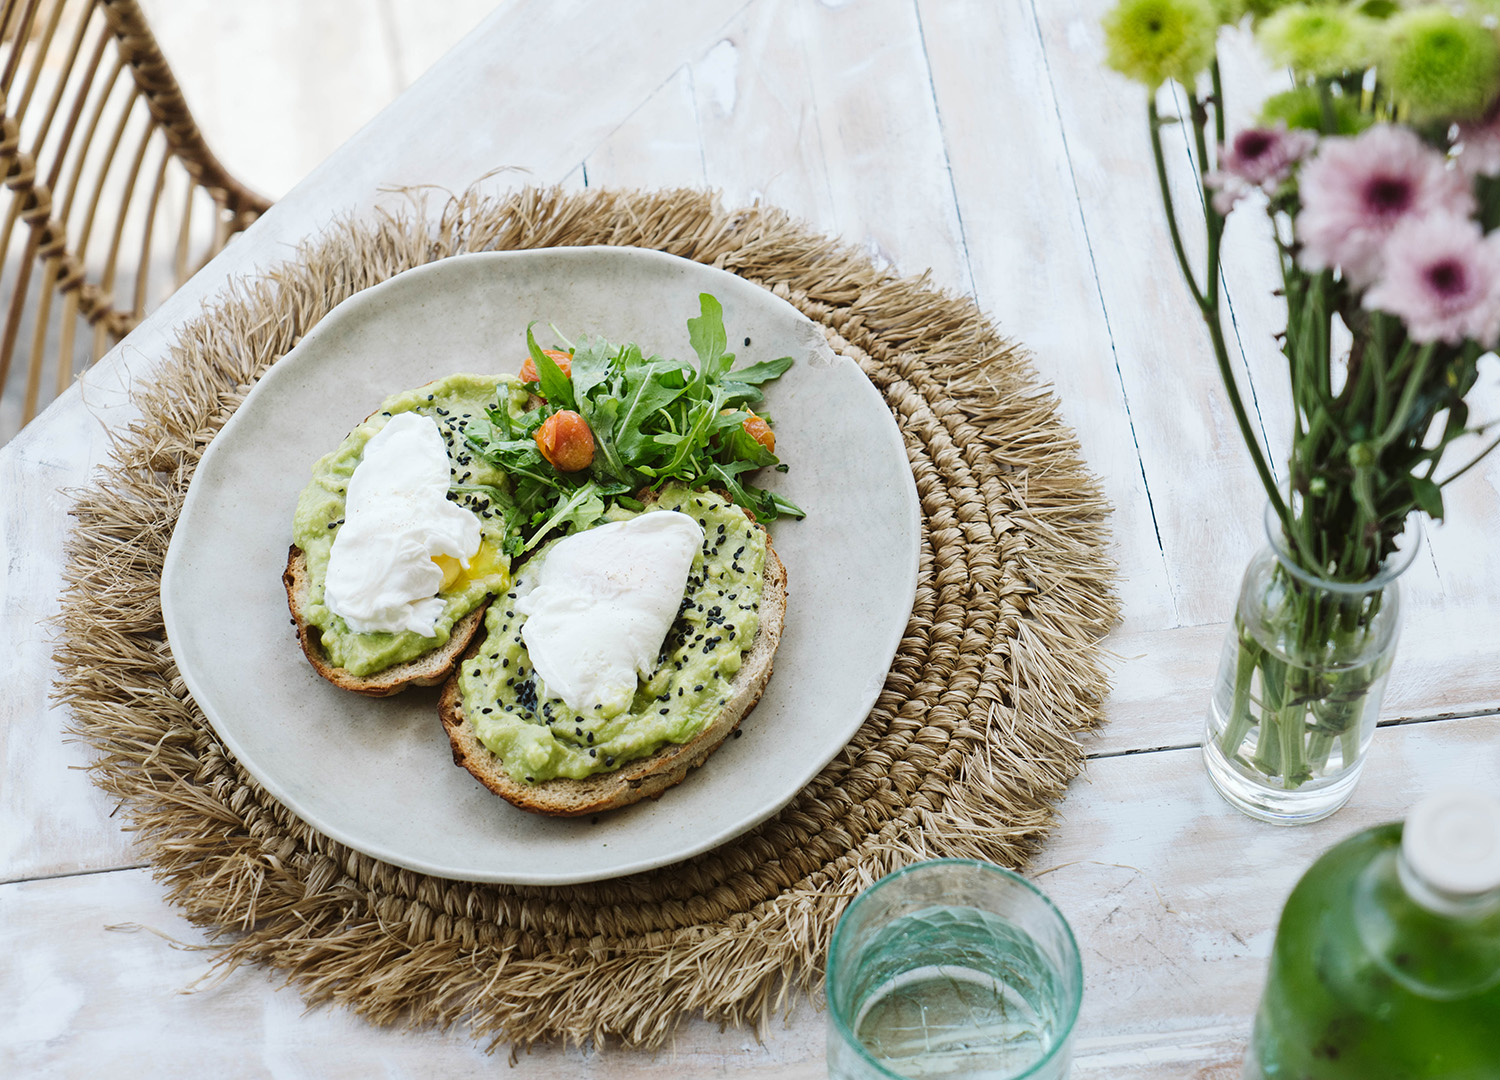 plate with avocado toast served in our surf destination Dreamsea Bali Canggu